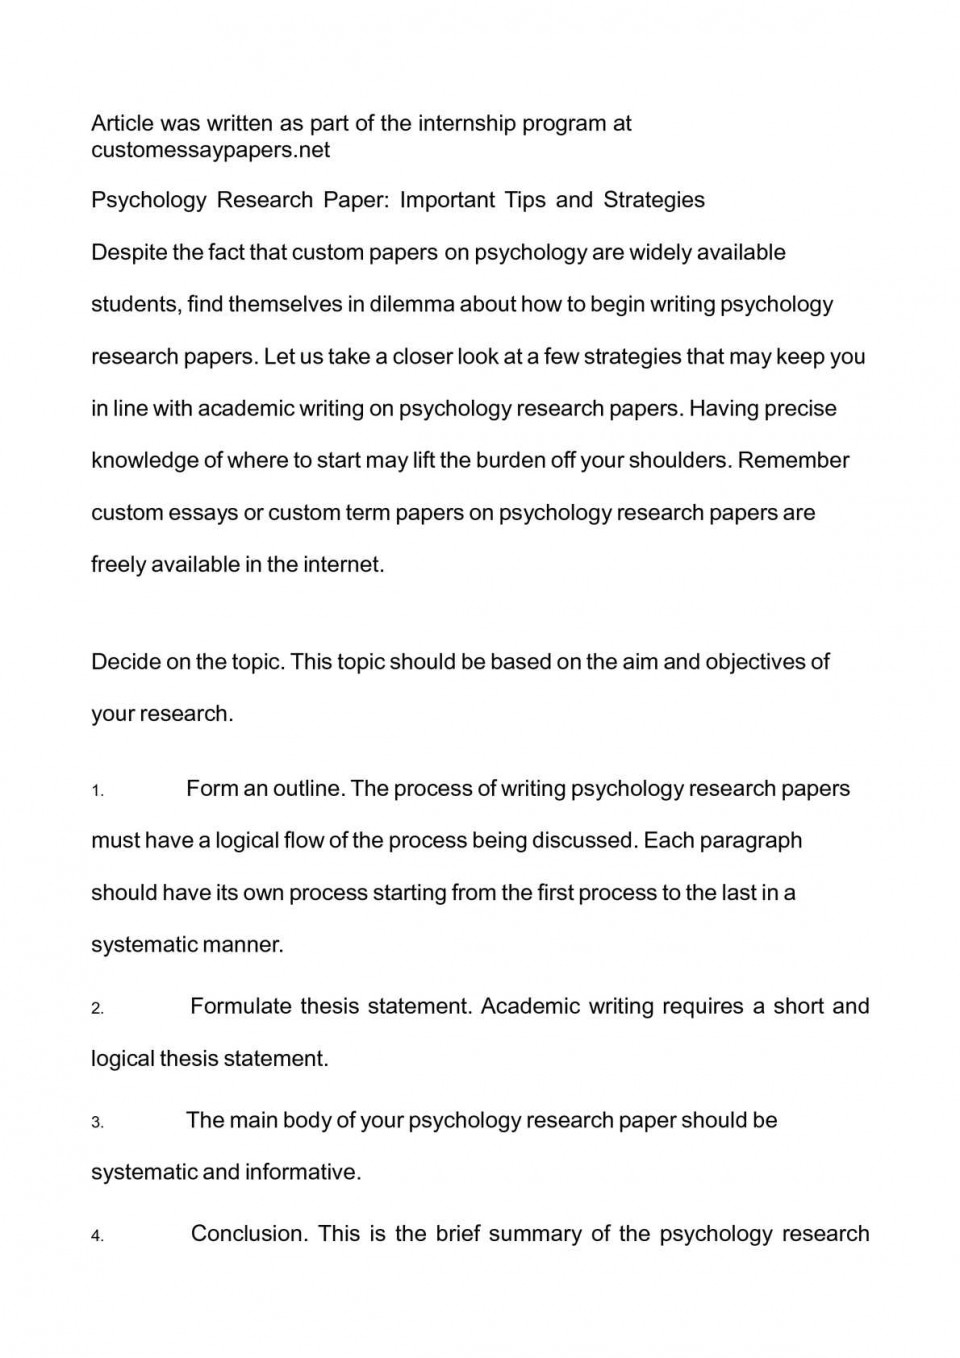 019 Psychology Research Paper Topics Striking Depression Papers On Dreams 960